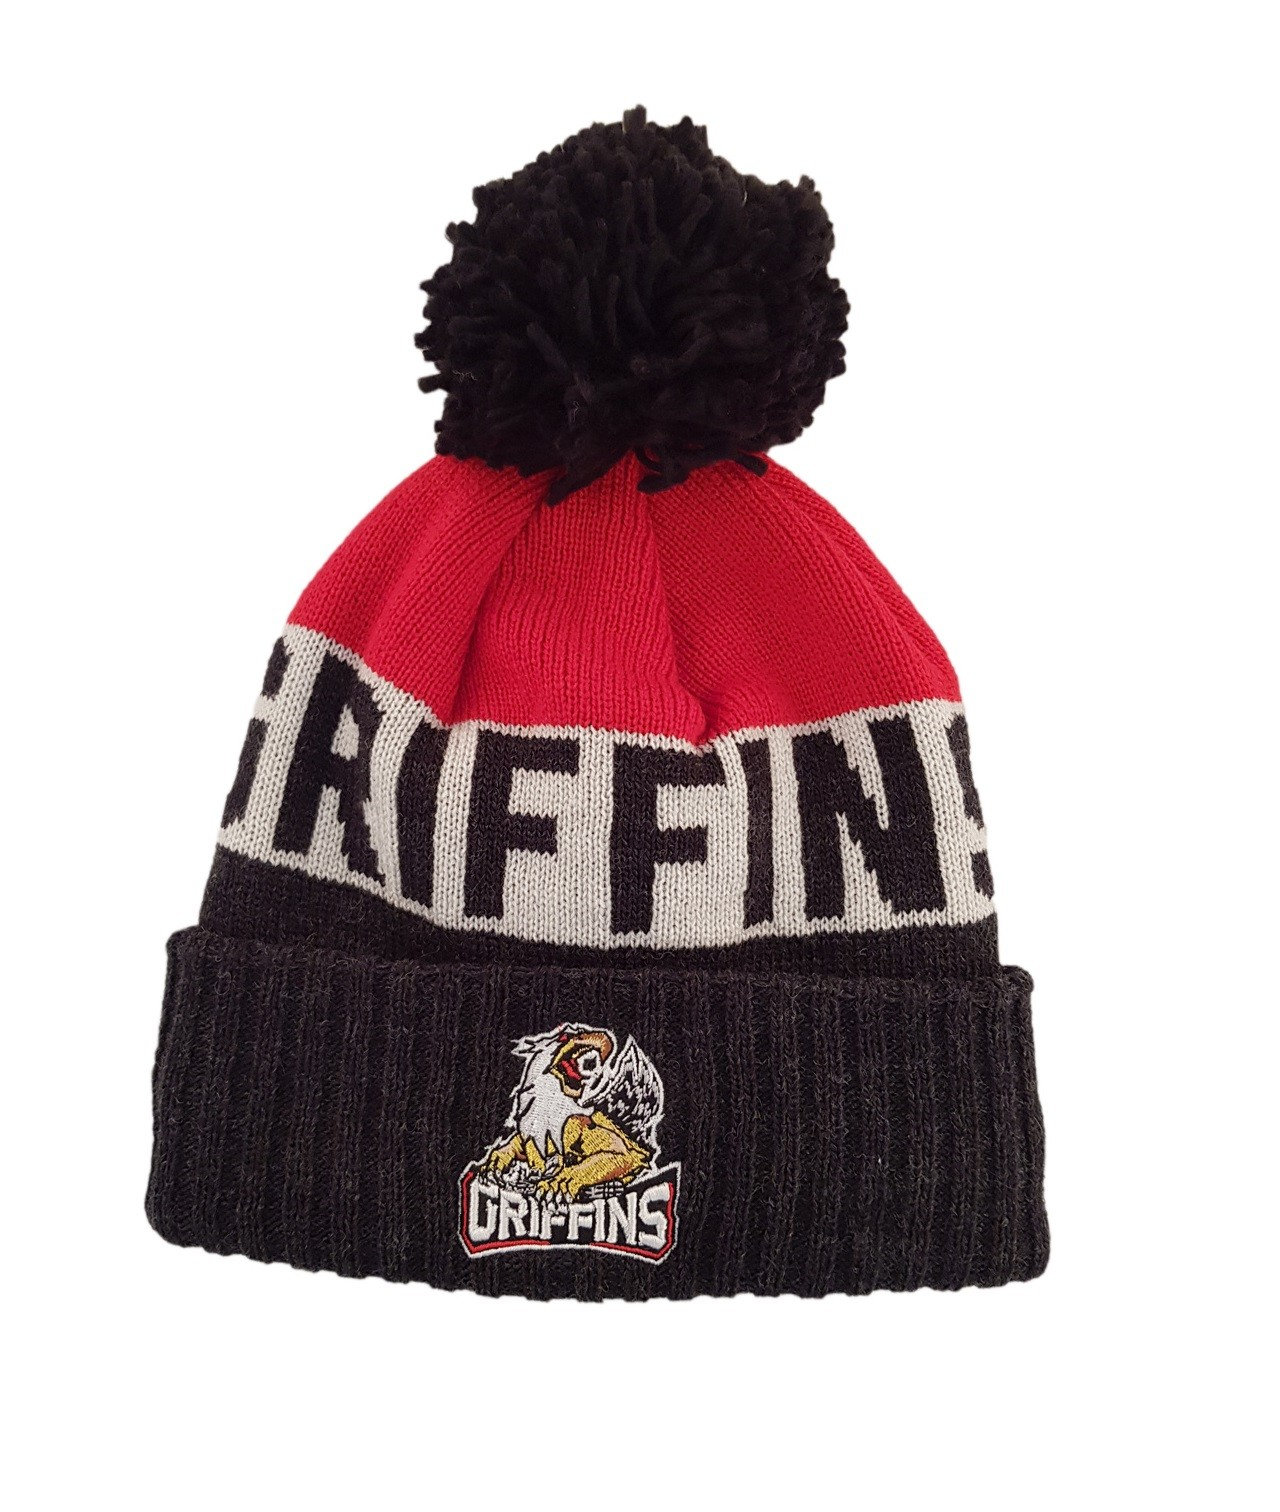 CCM Griffins Winter Hat C3949